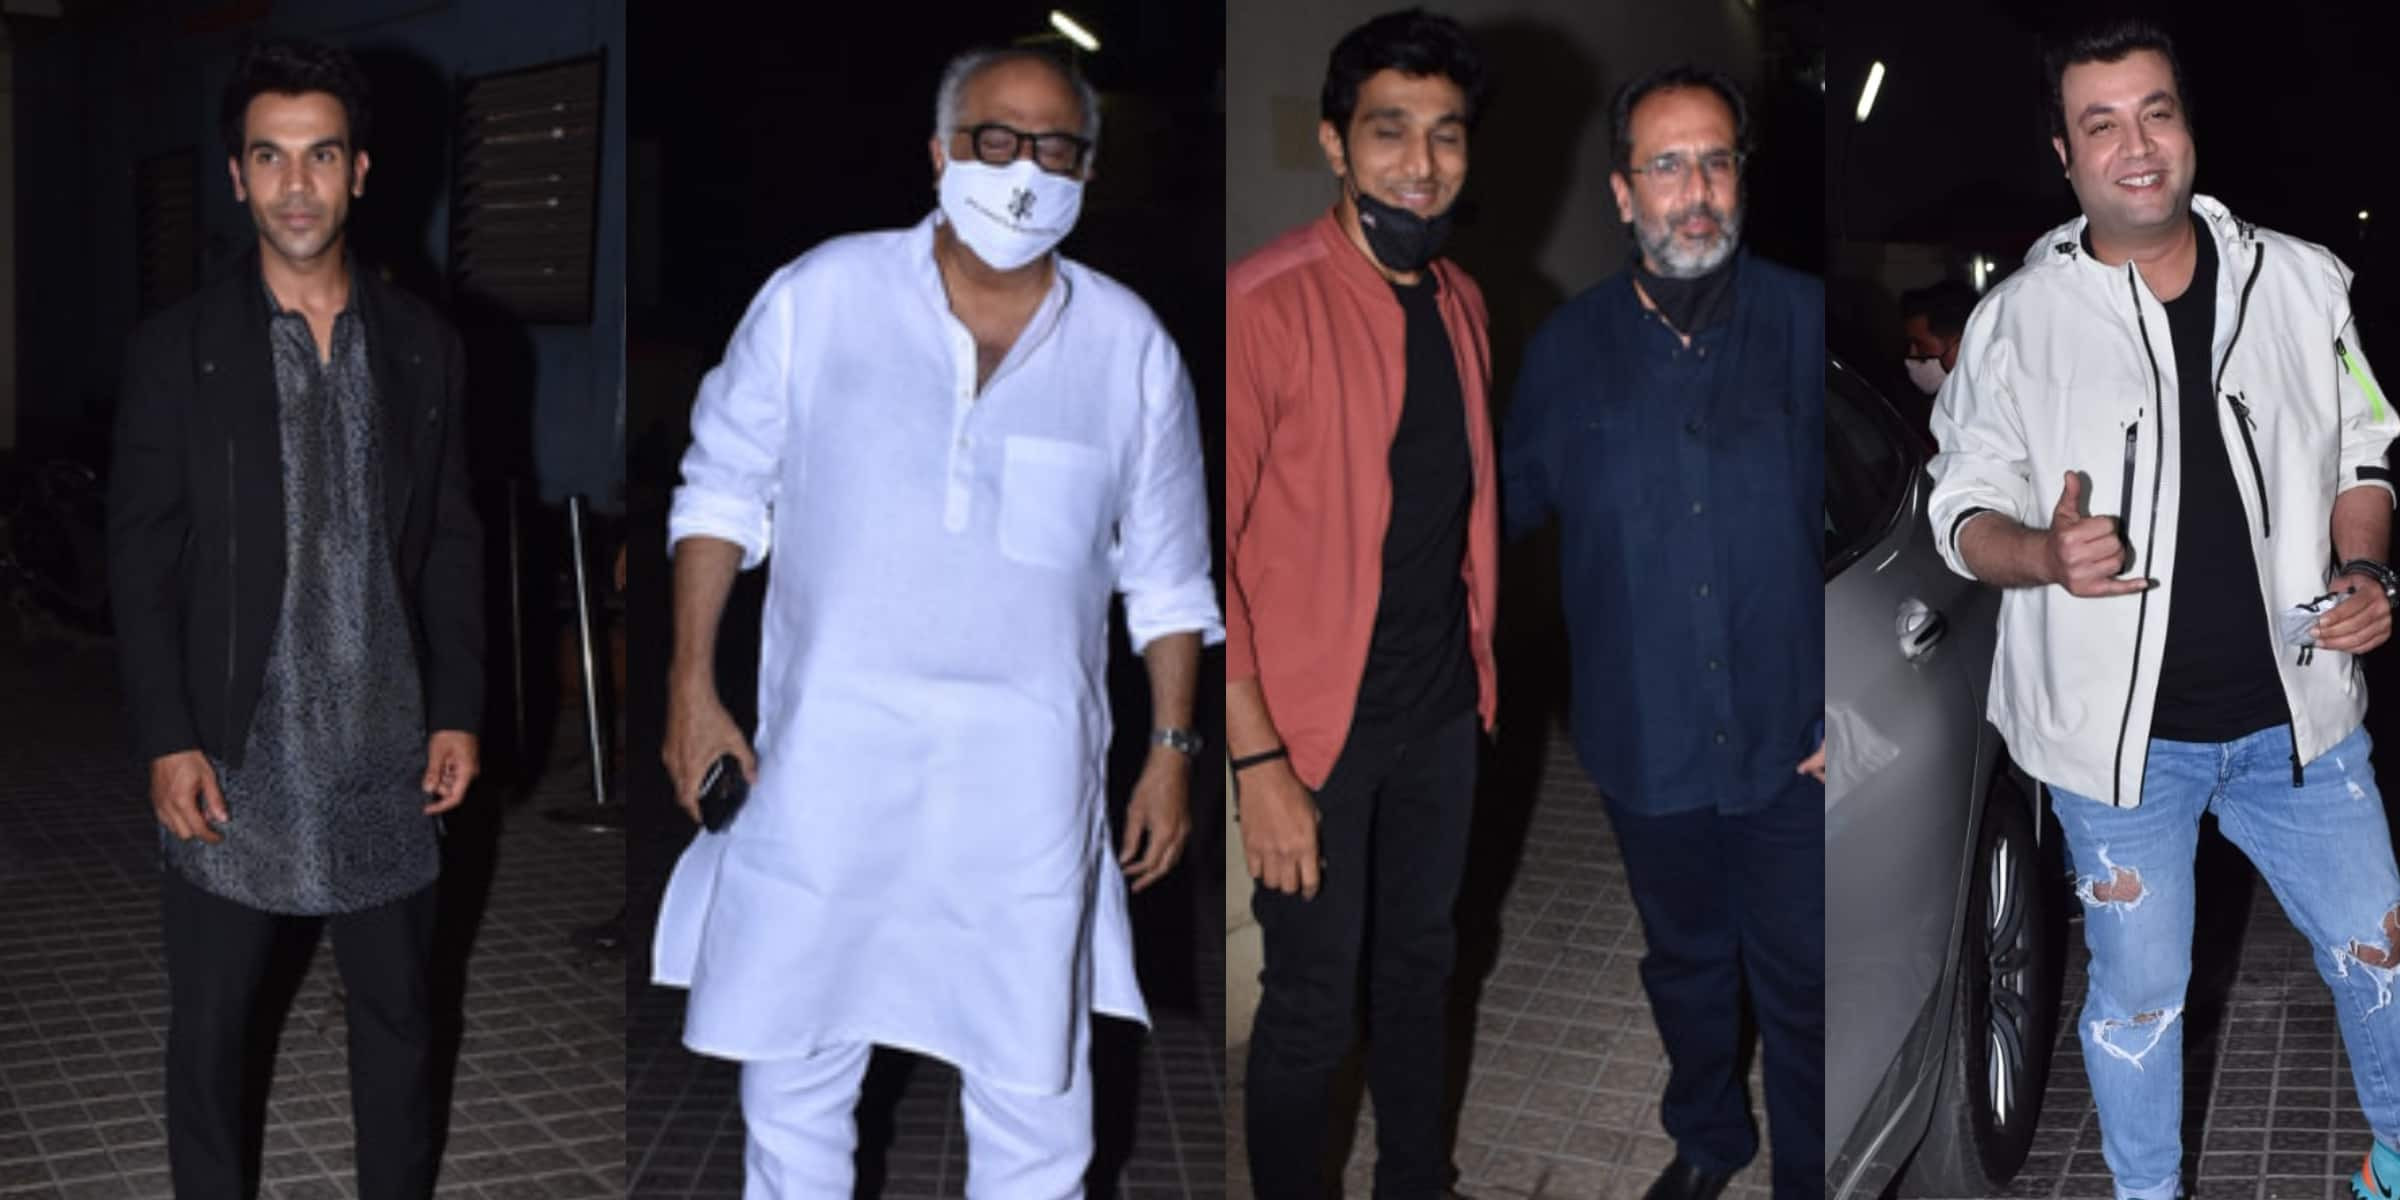 Roohi Screening: Aanand L. Rai, Ali Fazal, Boney Kapoor And Other Celebs Step Out To Watch The Film In Theatres